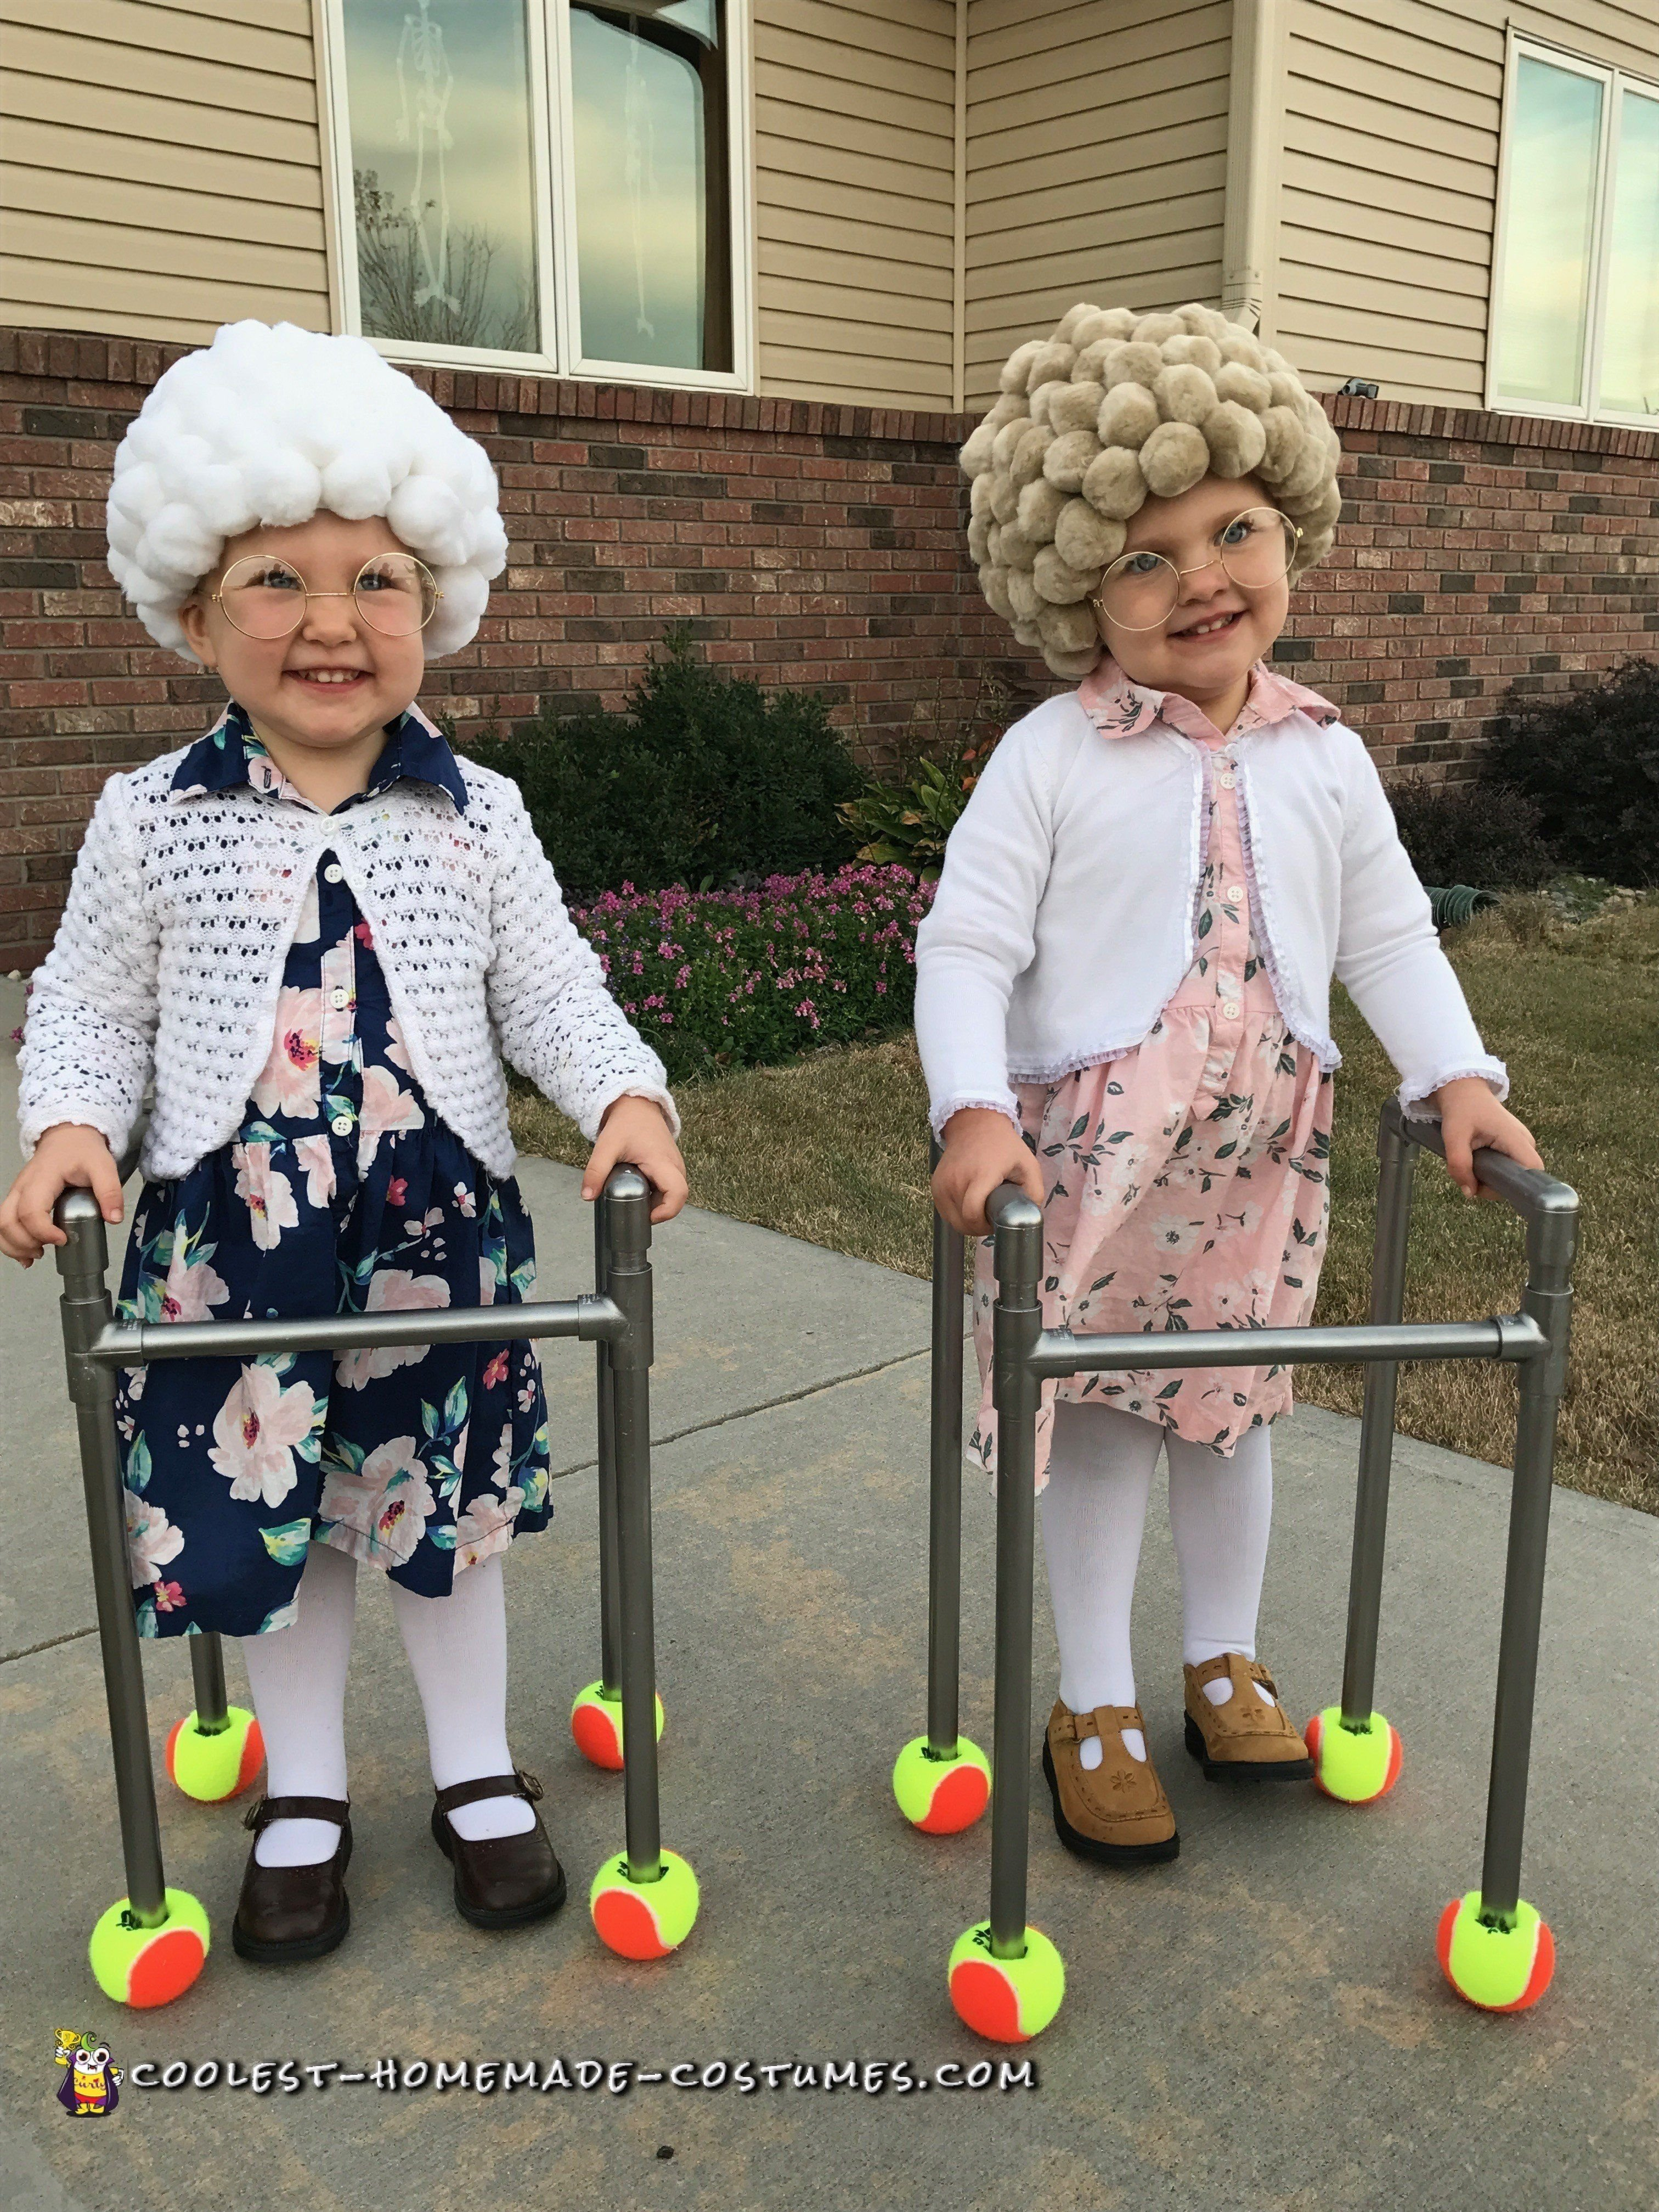 10 Attractive Old Lady Halloween Costume Ideas easy diy adorable twin old ladies homemade costumes costumes and